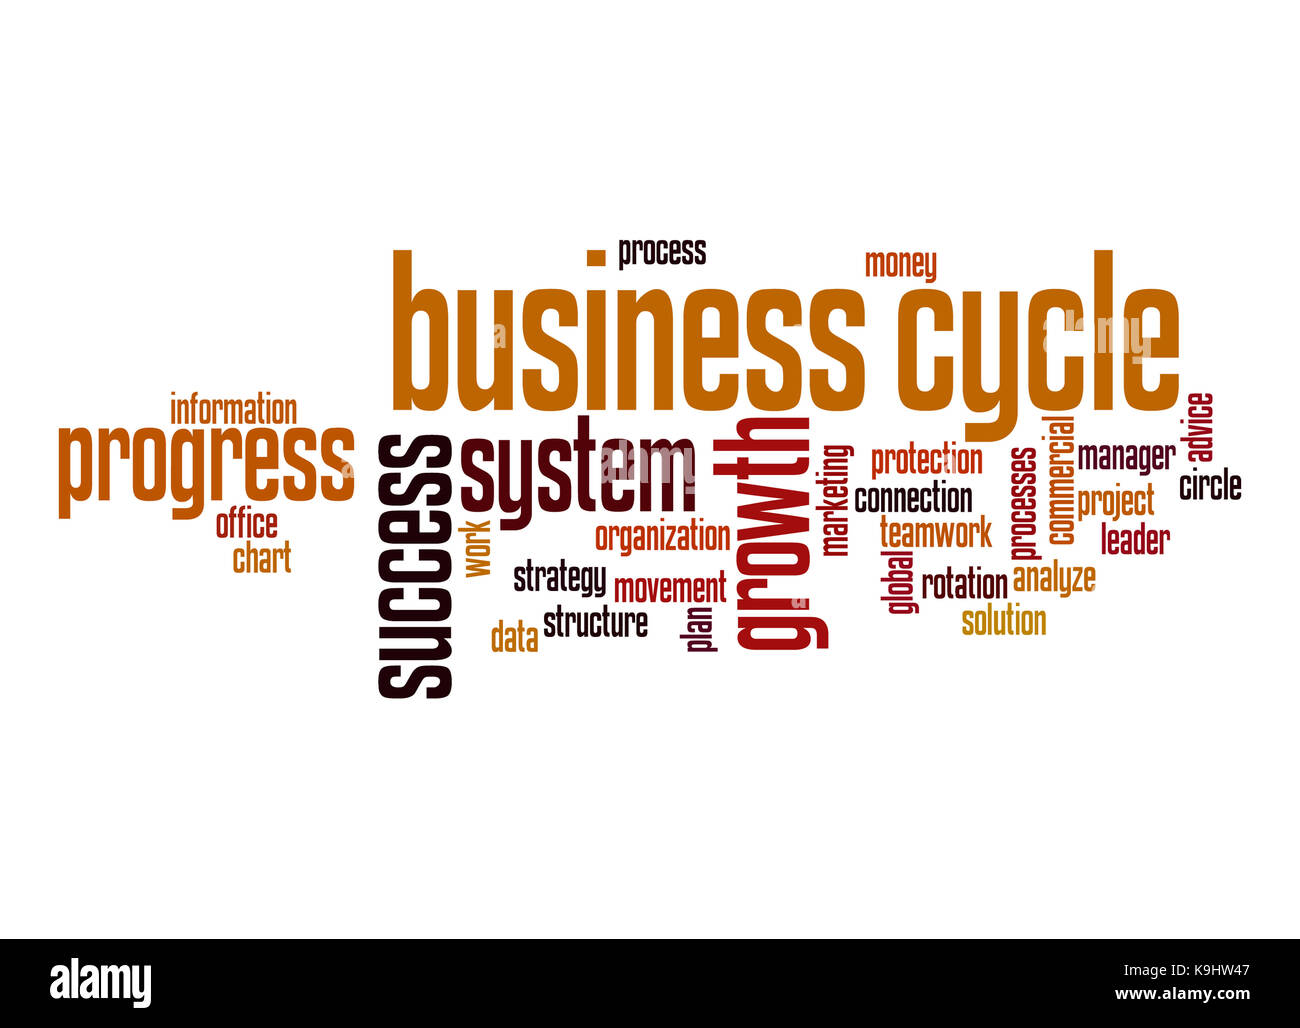 Business cycle word cloud - Stock Image